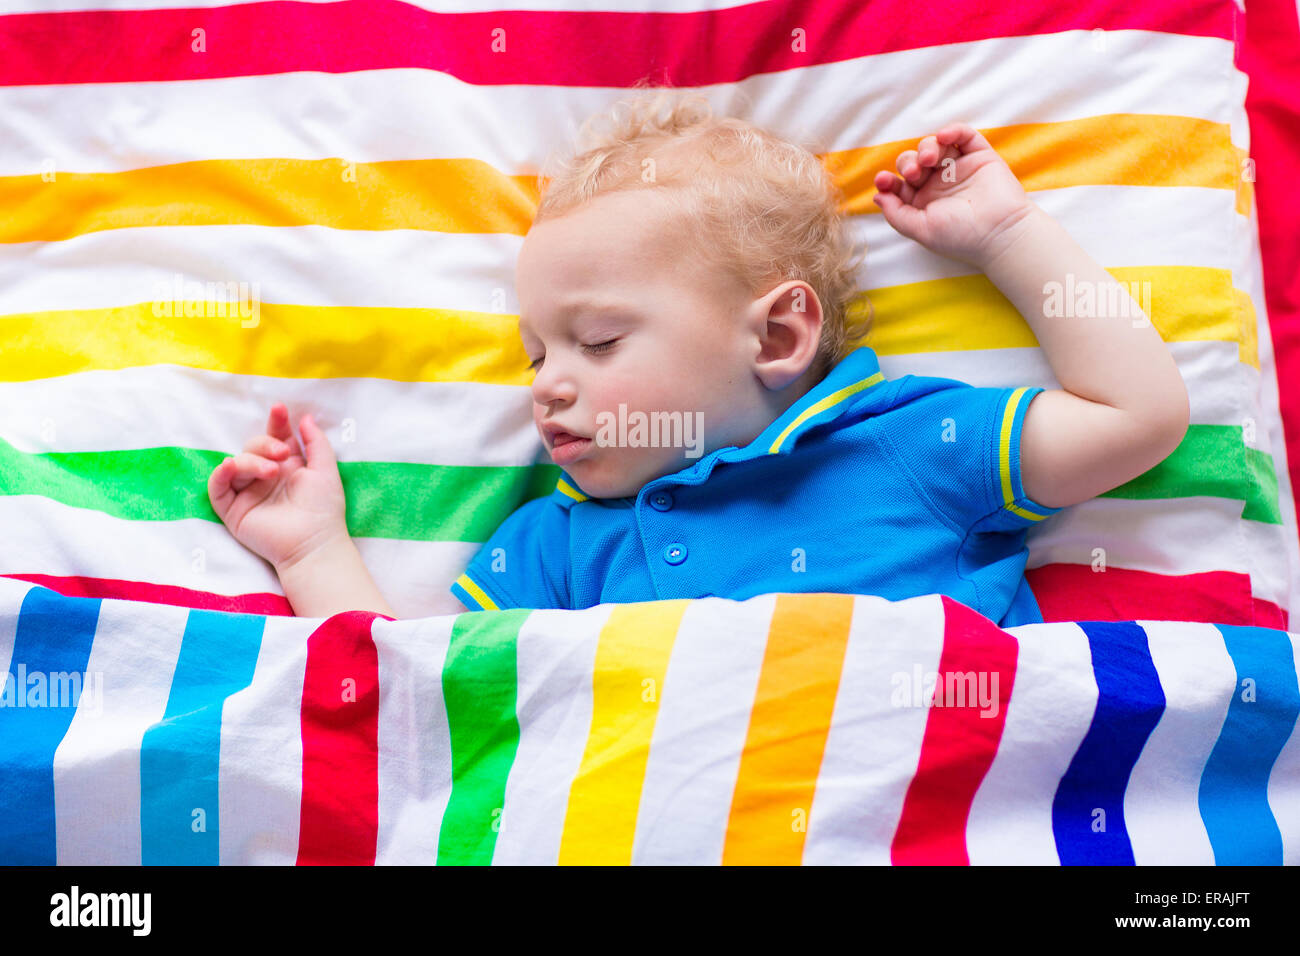 Child sleeping in colorful bed. Little baby boy asleep. Kids textile in rainbow color. Toddler kid relaxing on a - Stock Image